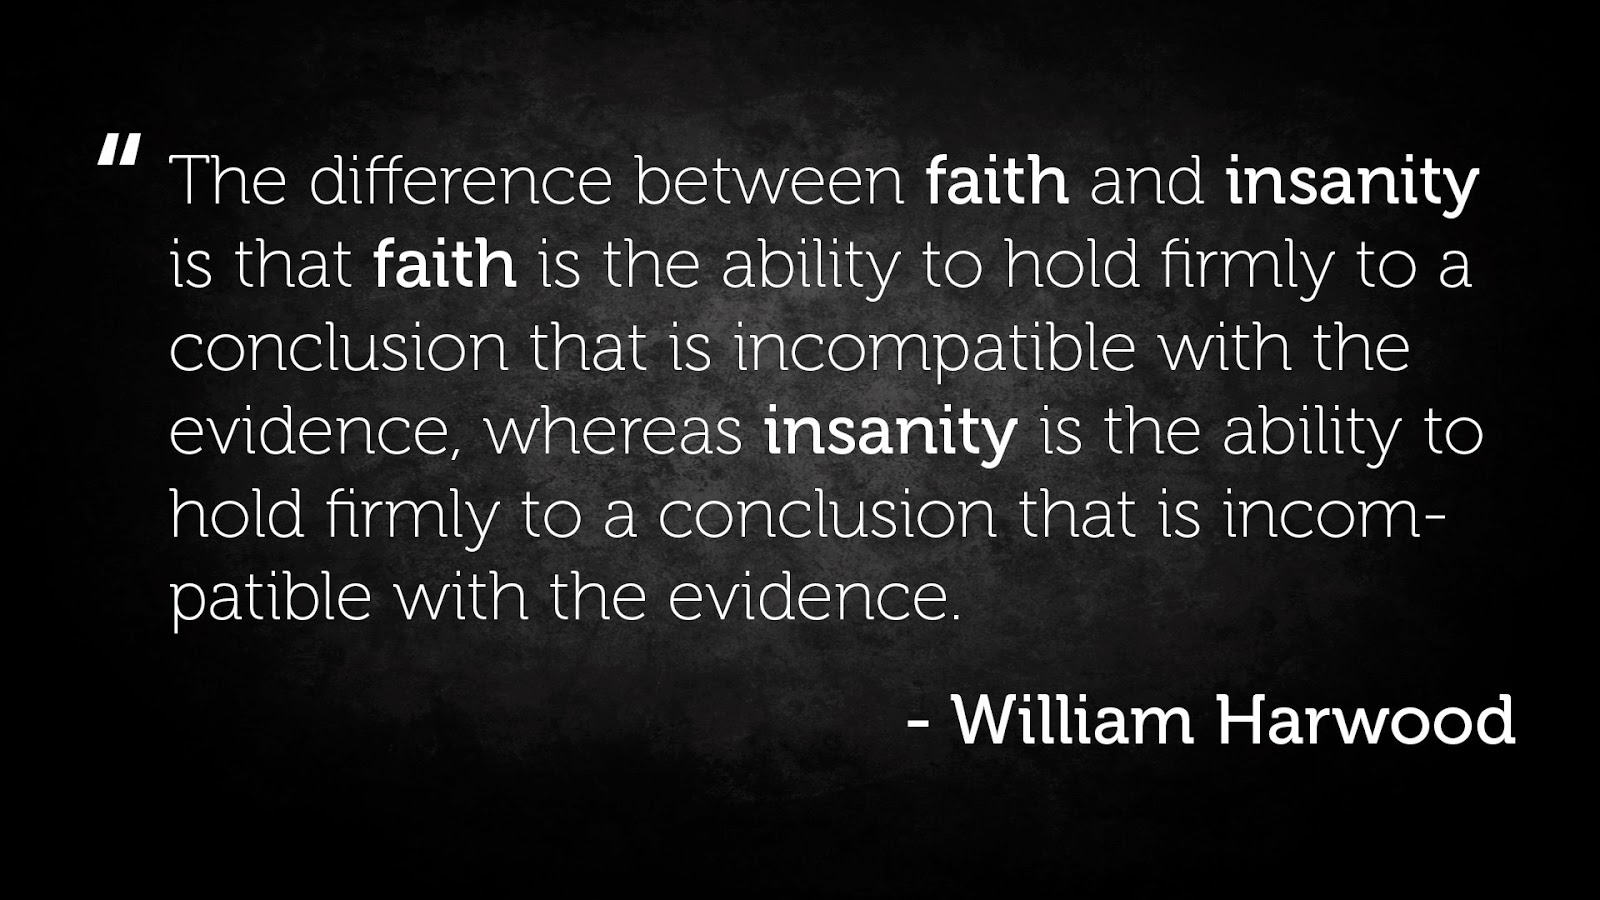 Funny Faith Insanity Difference William Harwood Quote